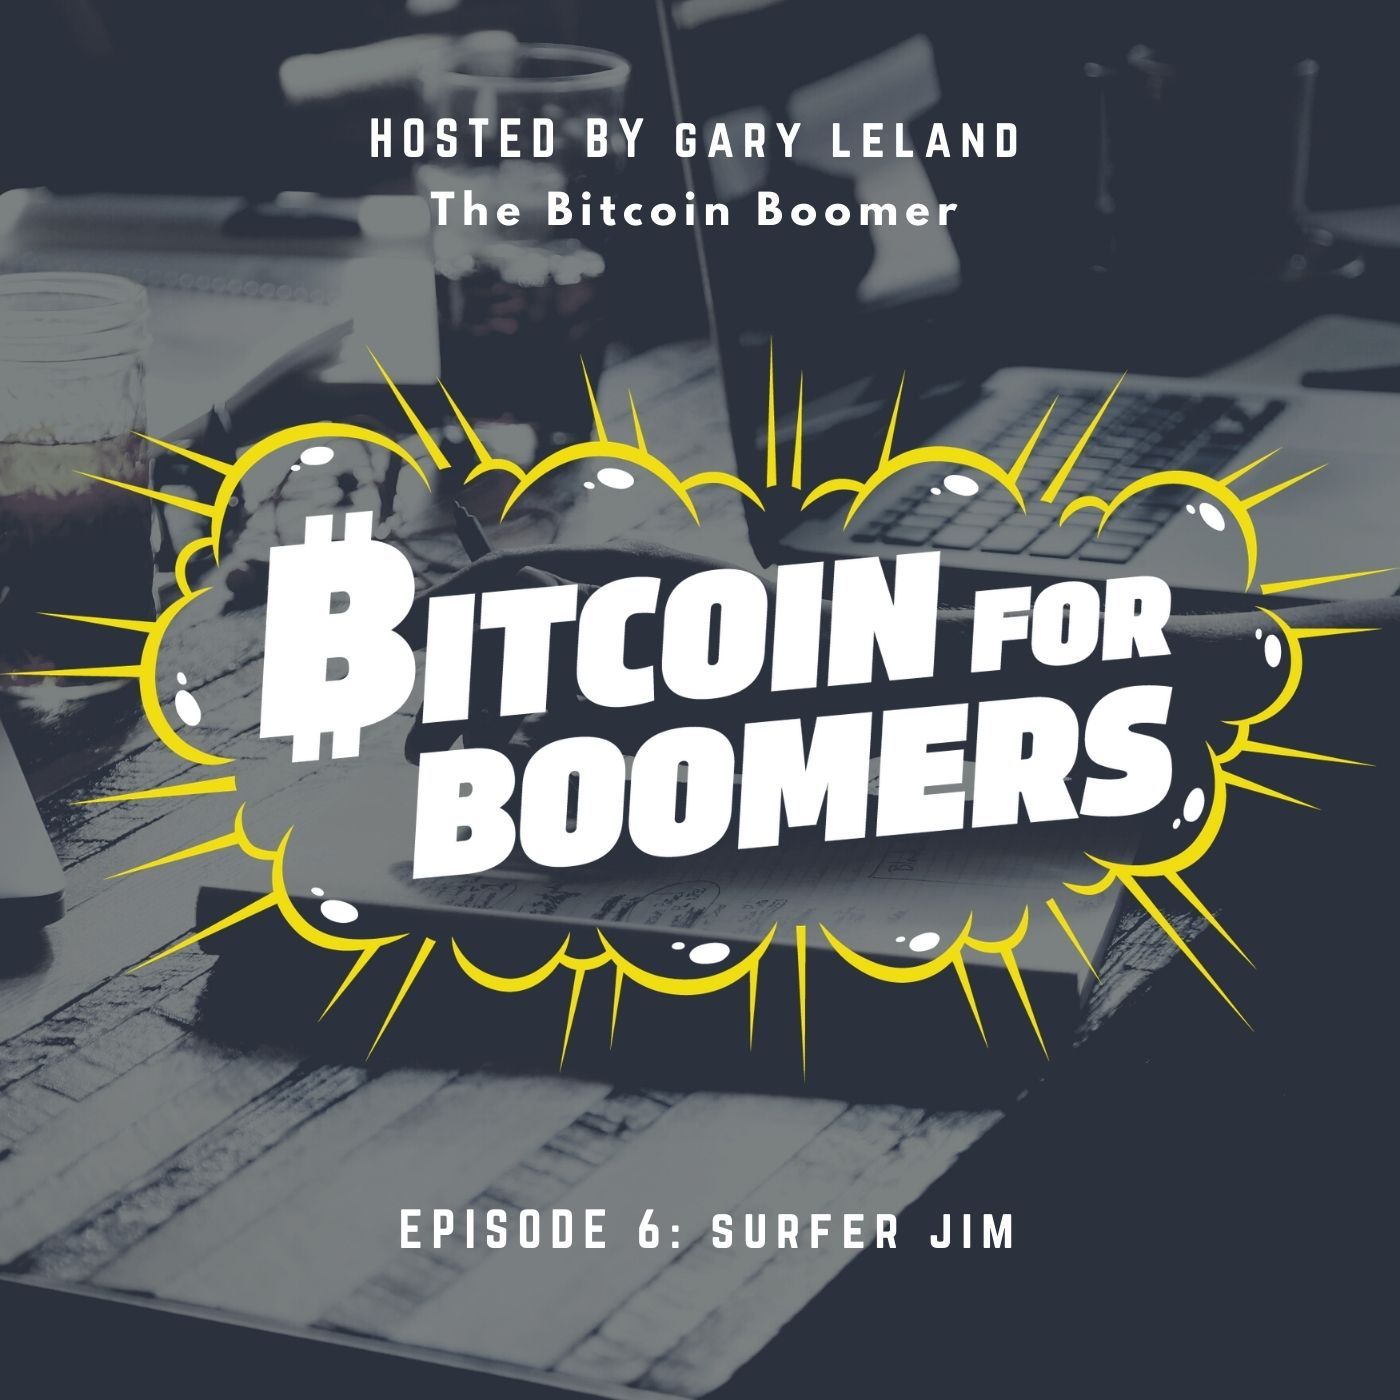 Artwork for podcast Bitcoin For Boomers